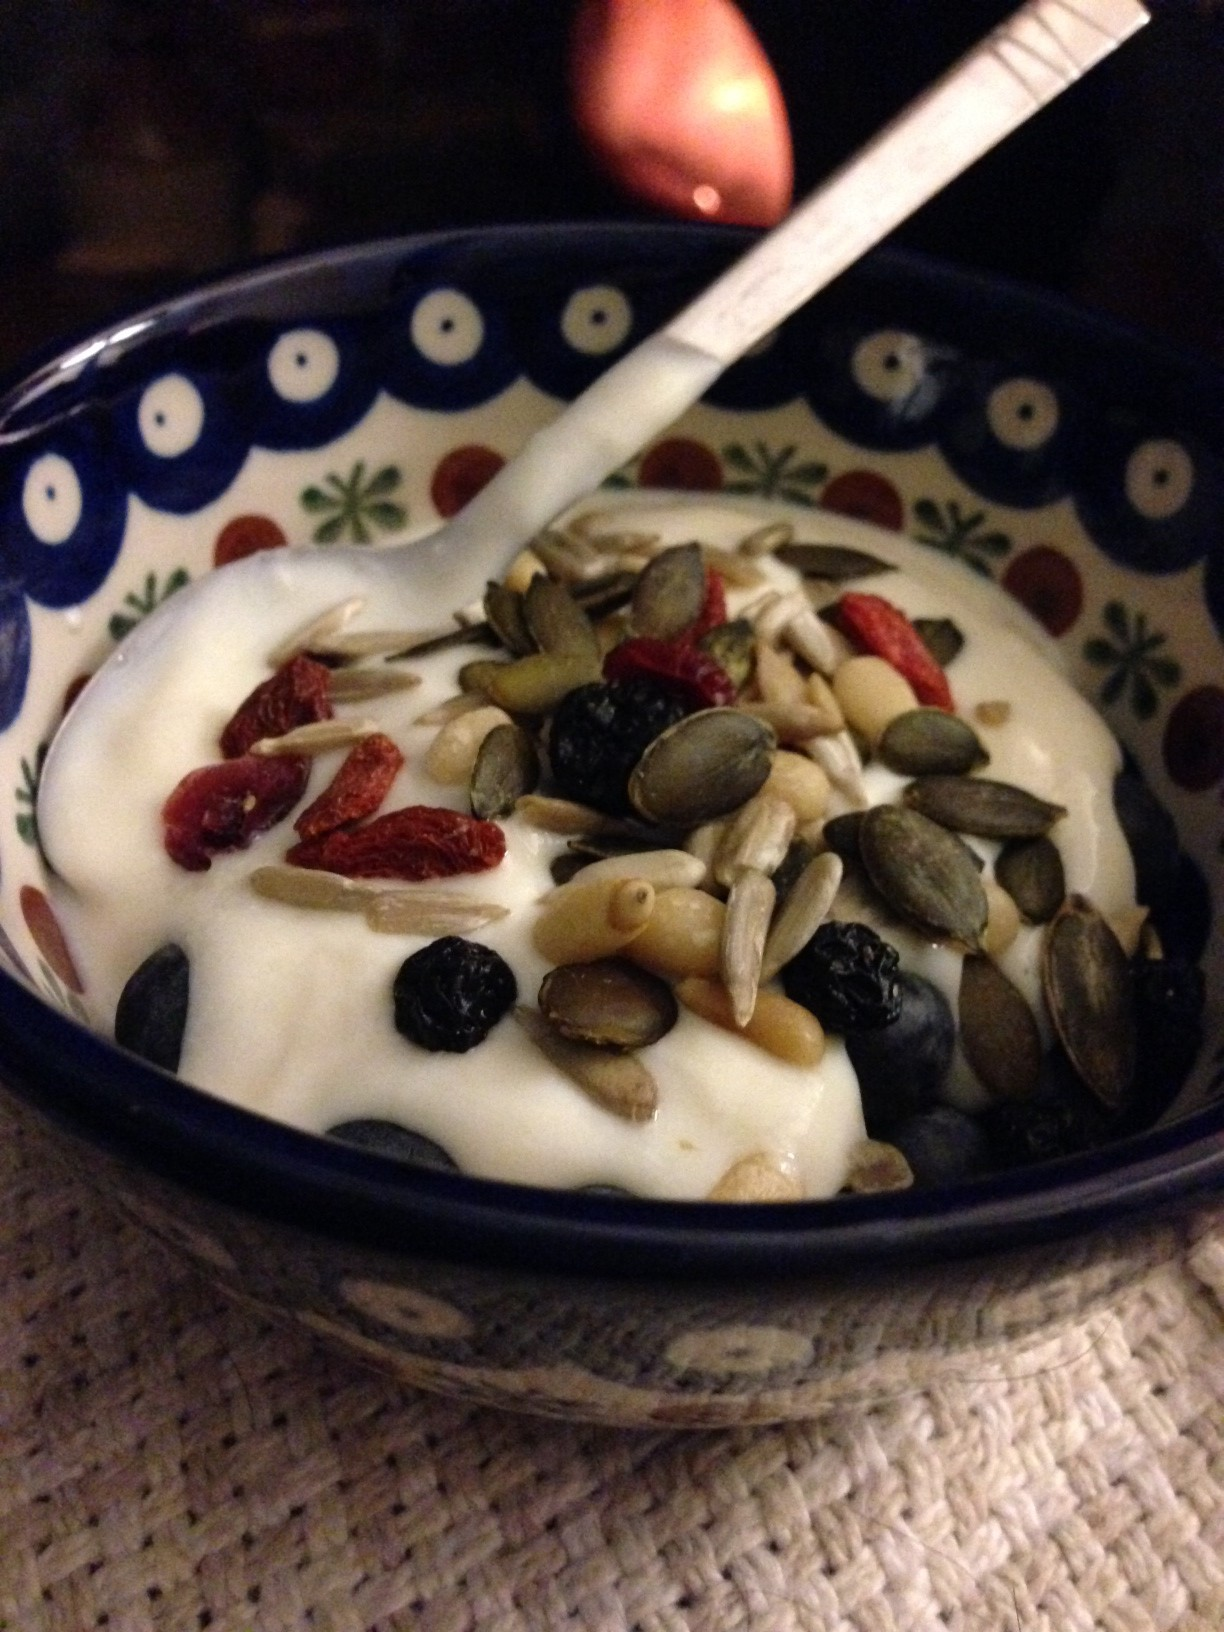 Fruit, seeds and yoghurt